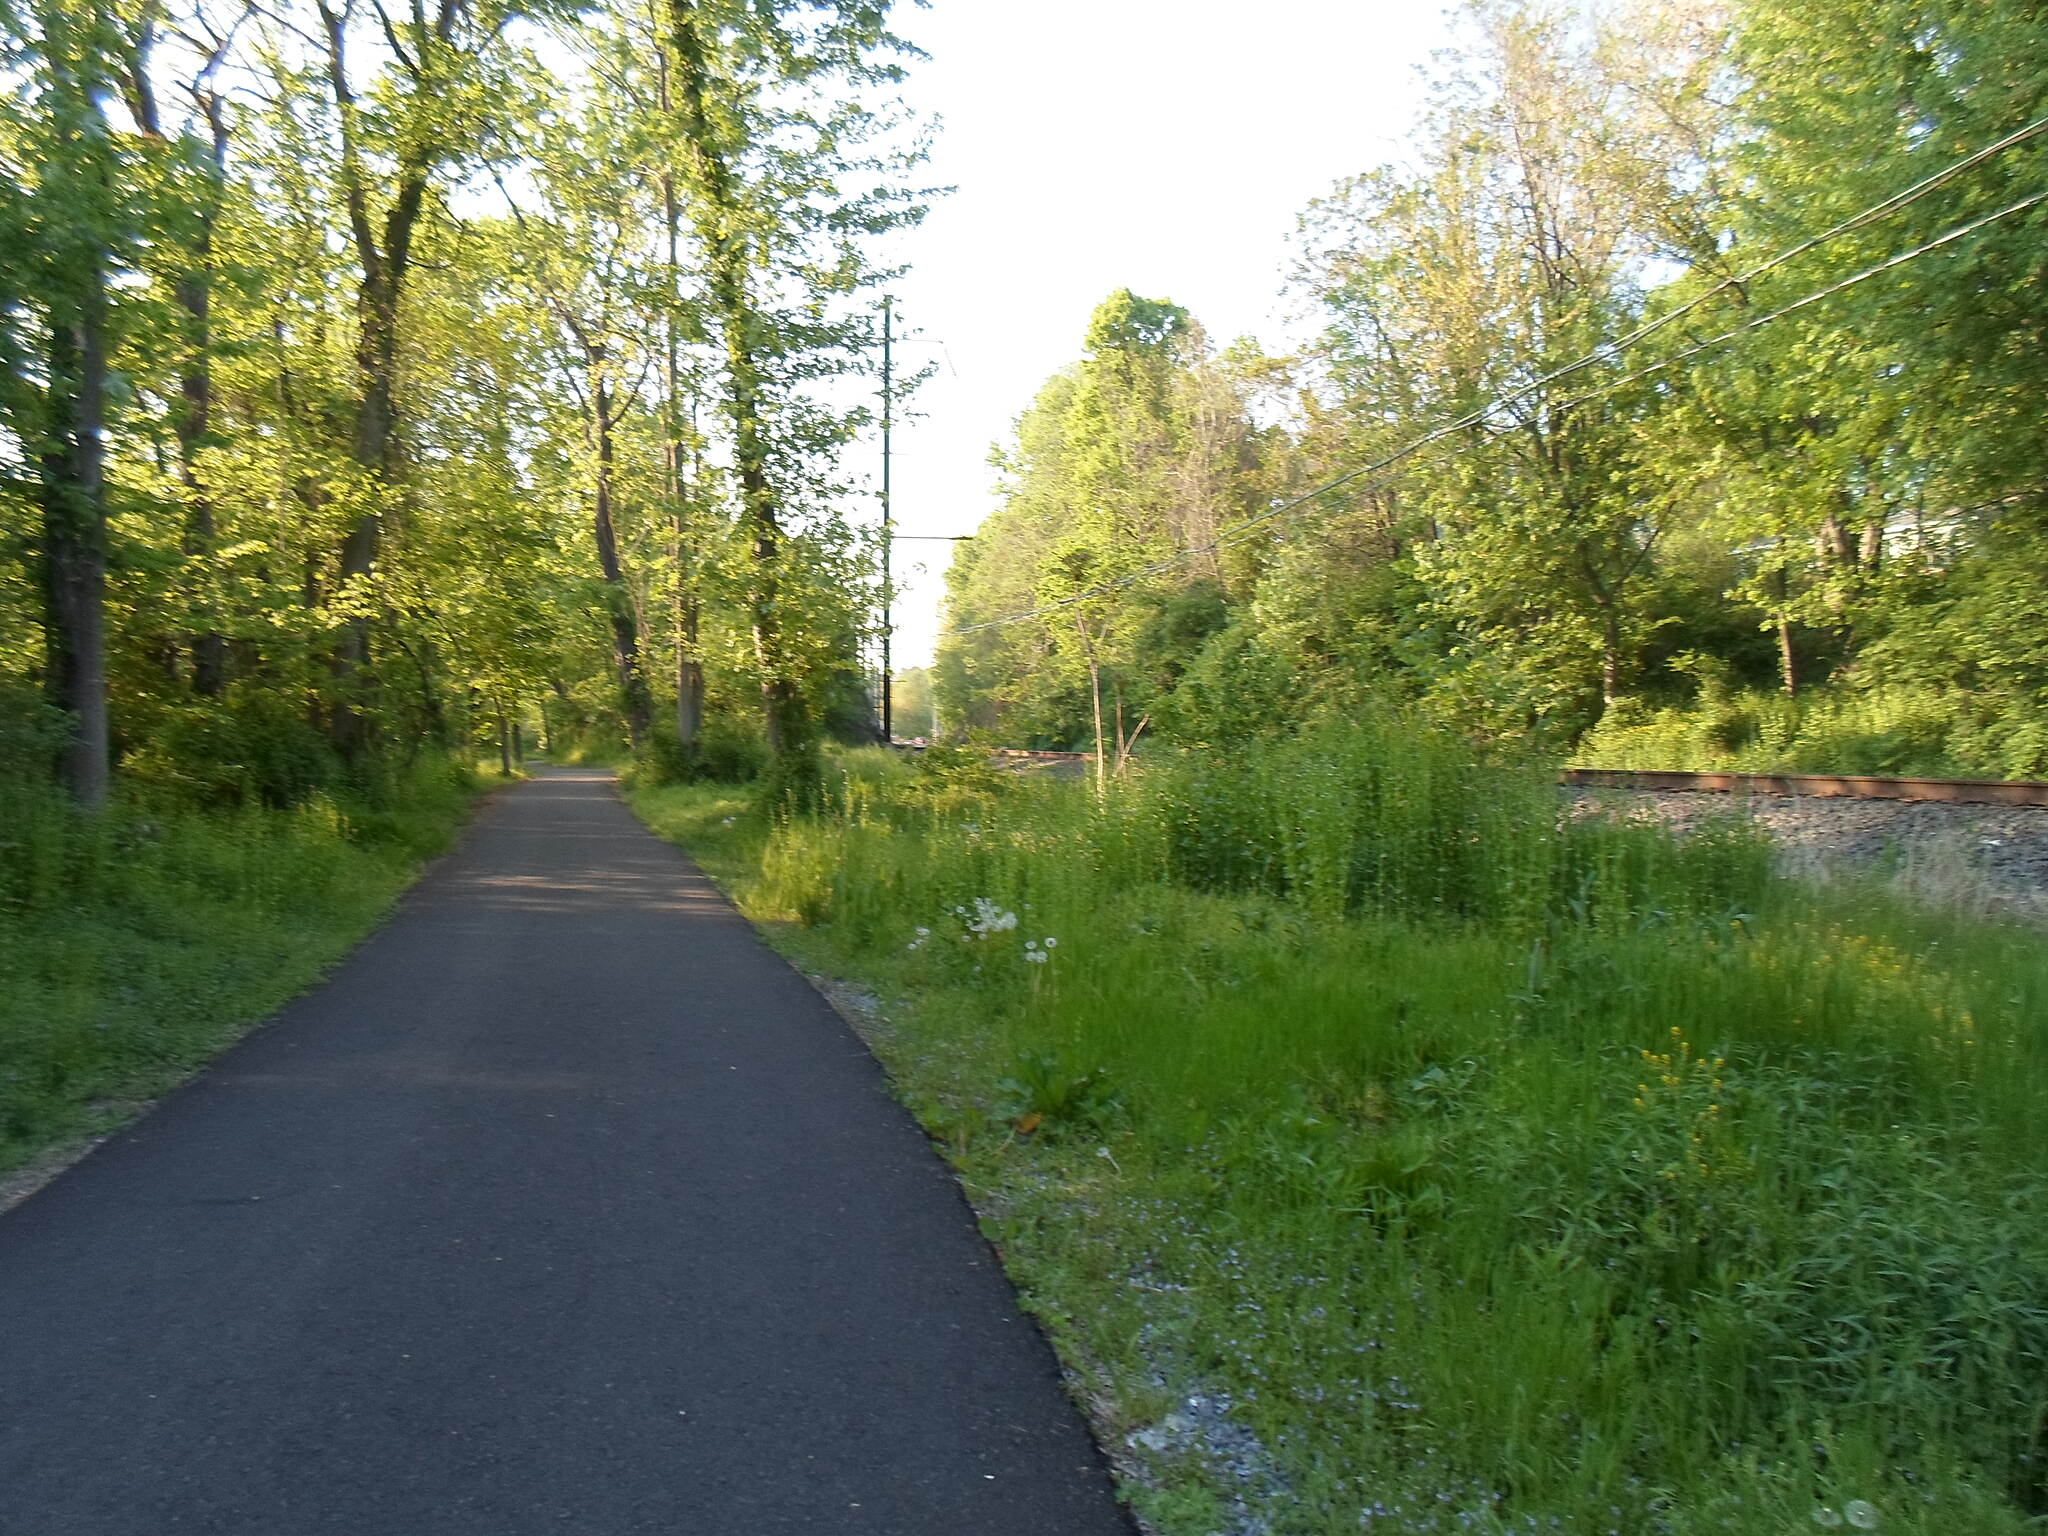 Northwest Lancaster County River Trail Northwest River Trail The trail parallels active, Norfolk Southern freight lines for much of its length. This photo was taken south of Bainbridge on a warm, spring evening in May 2015.